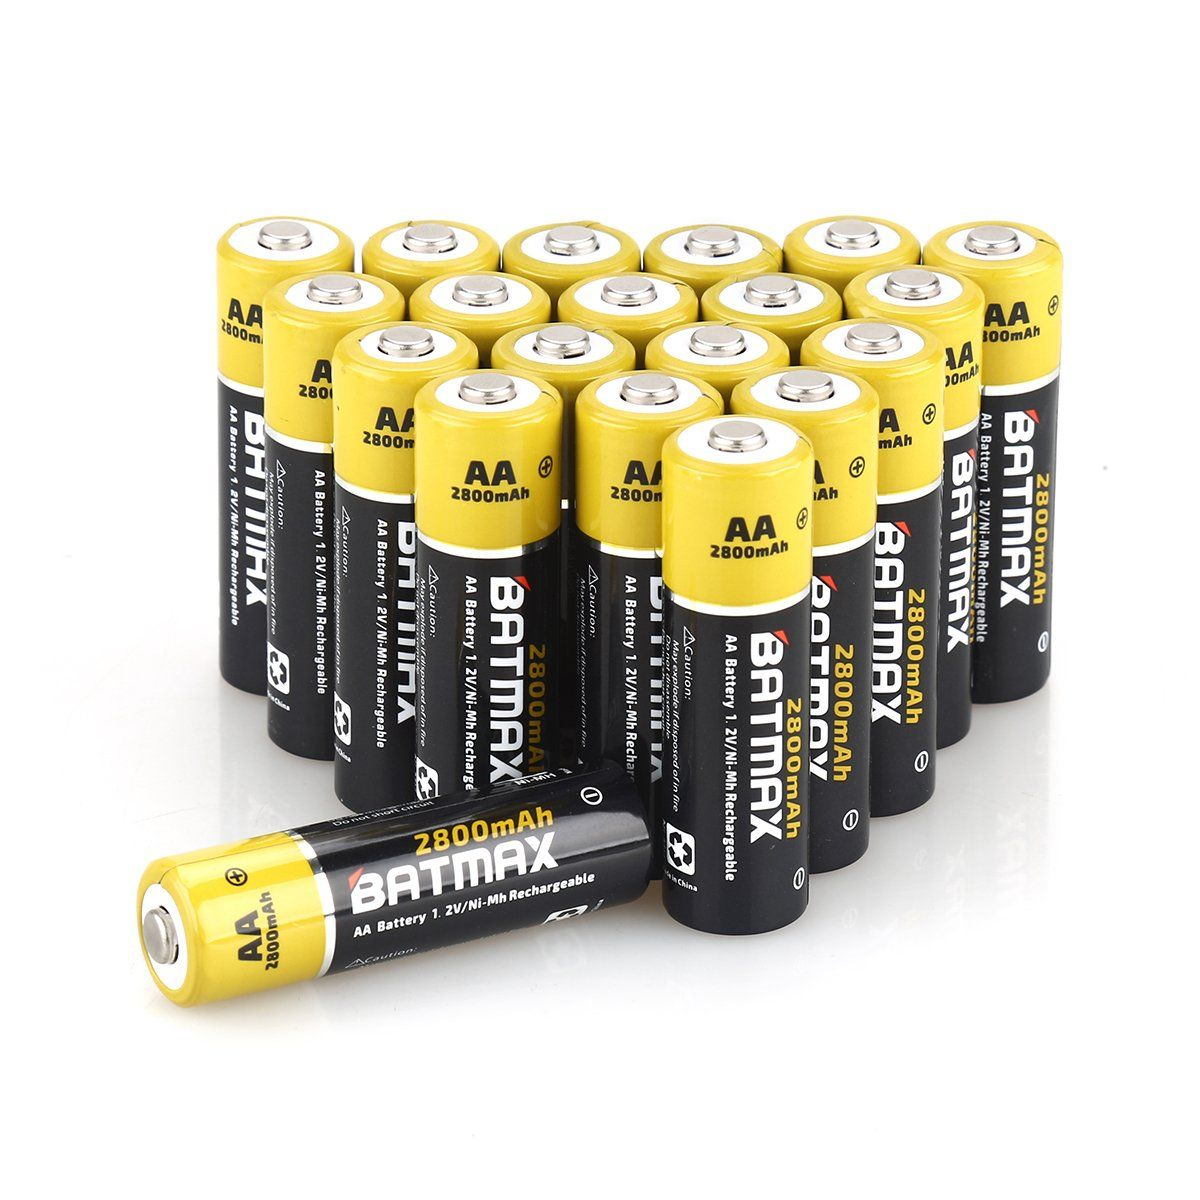 Batmax High Capacity Pack Of 20 Nimh 2800mah Aa Rechargeable Batteries Case Included Rechargeable Batteries Charger Accessories Nimh